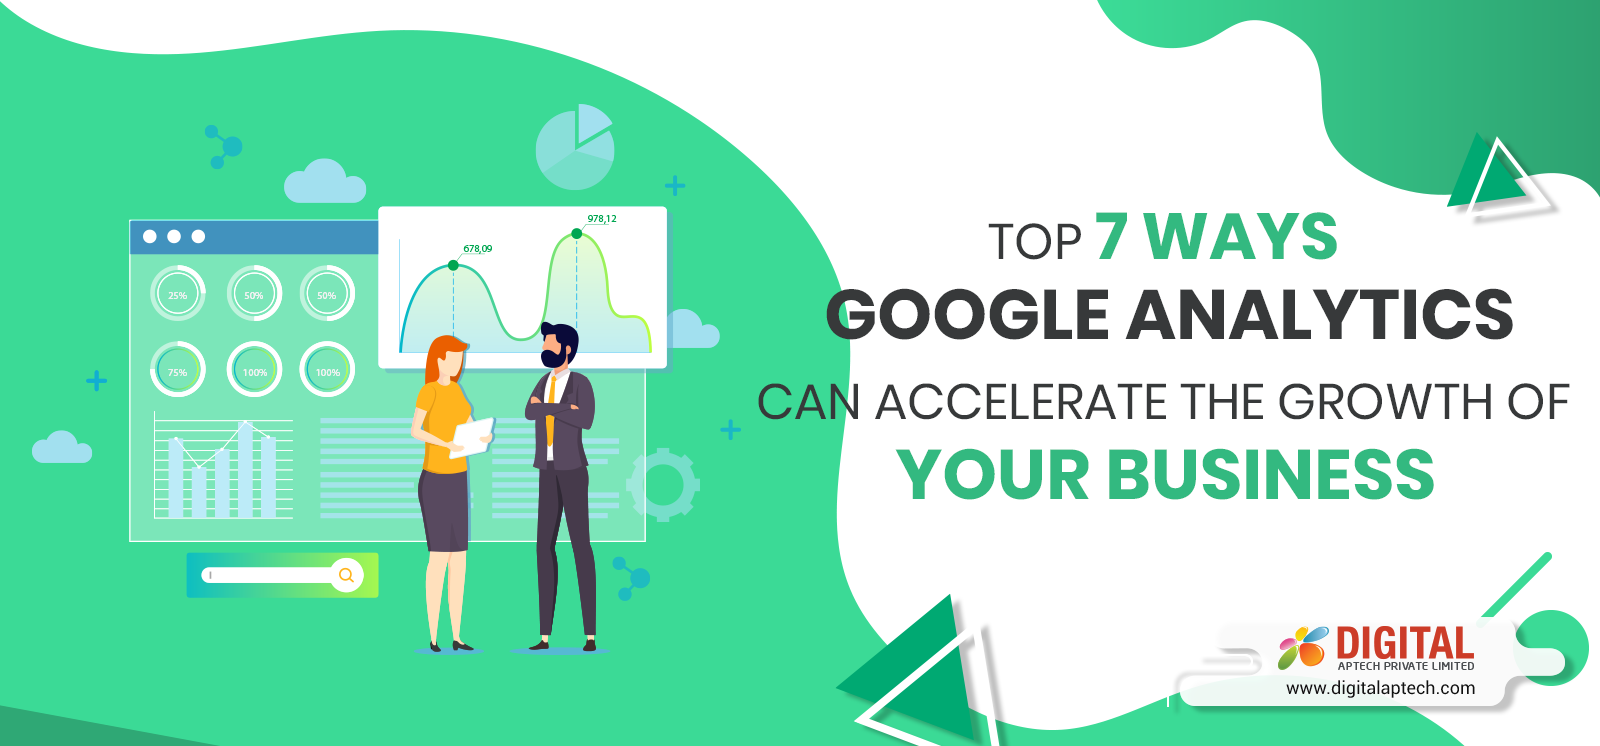 Top 7 Ways Google Analytics Can Accelerate the Growth of Your Business